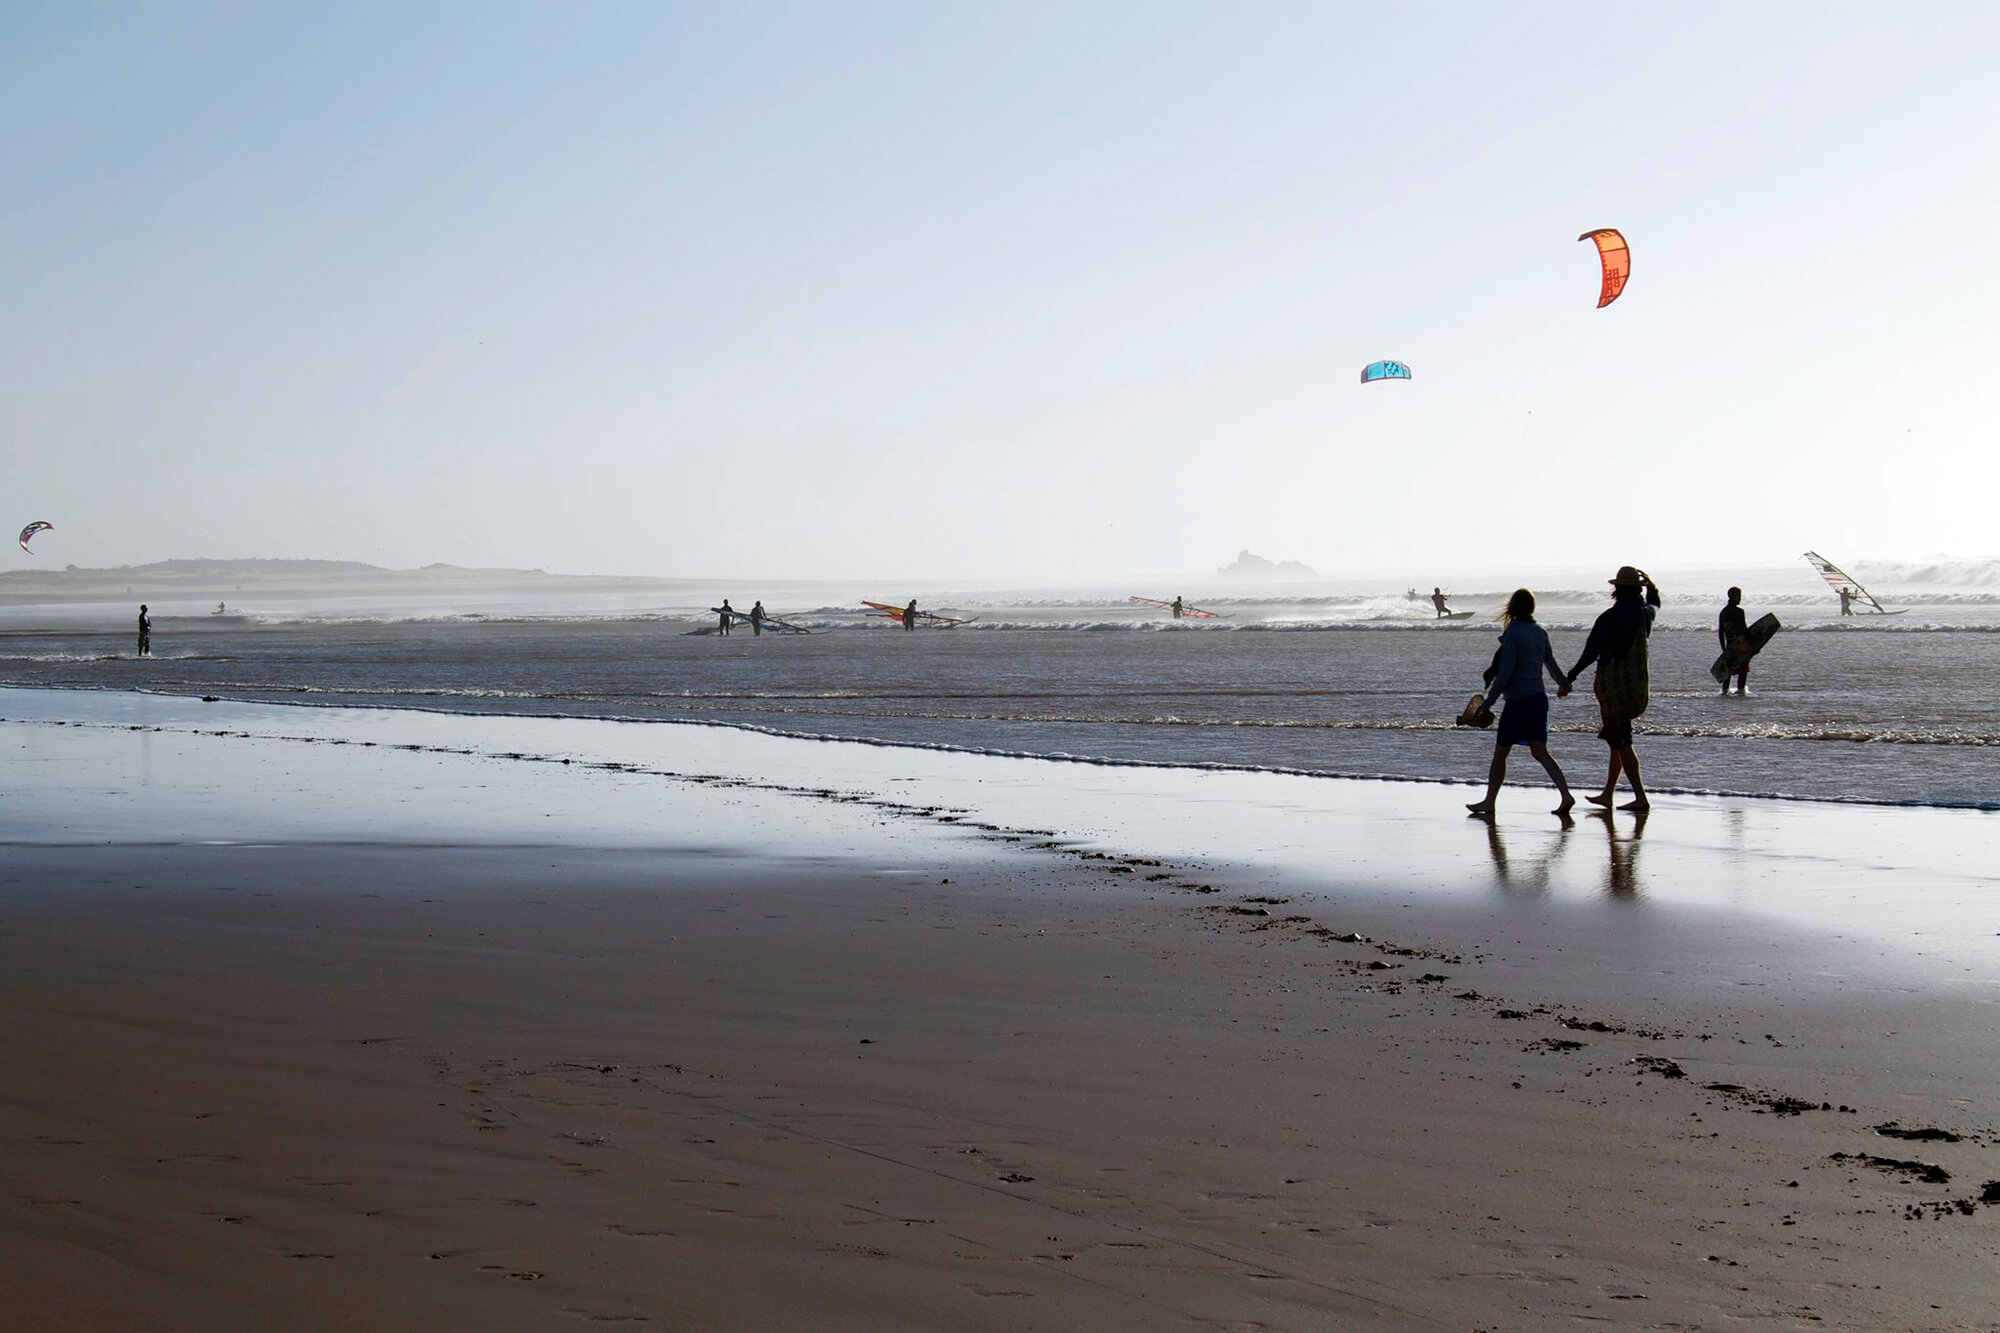 Best Beaches of Morocco - Between Mediterranean and Atlantic Ocean - Essaouira Beaches